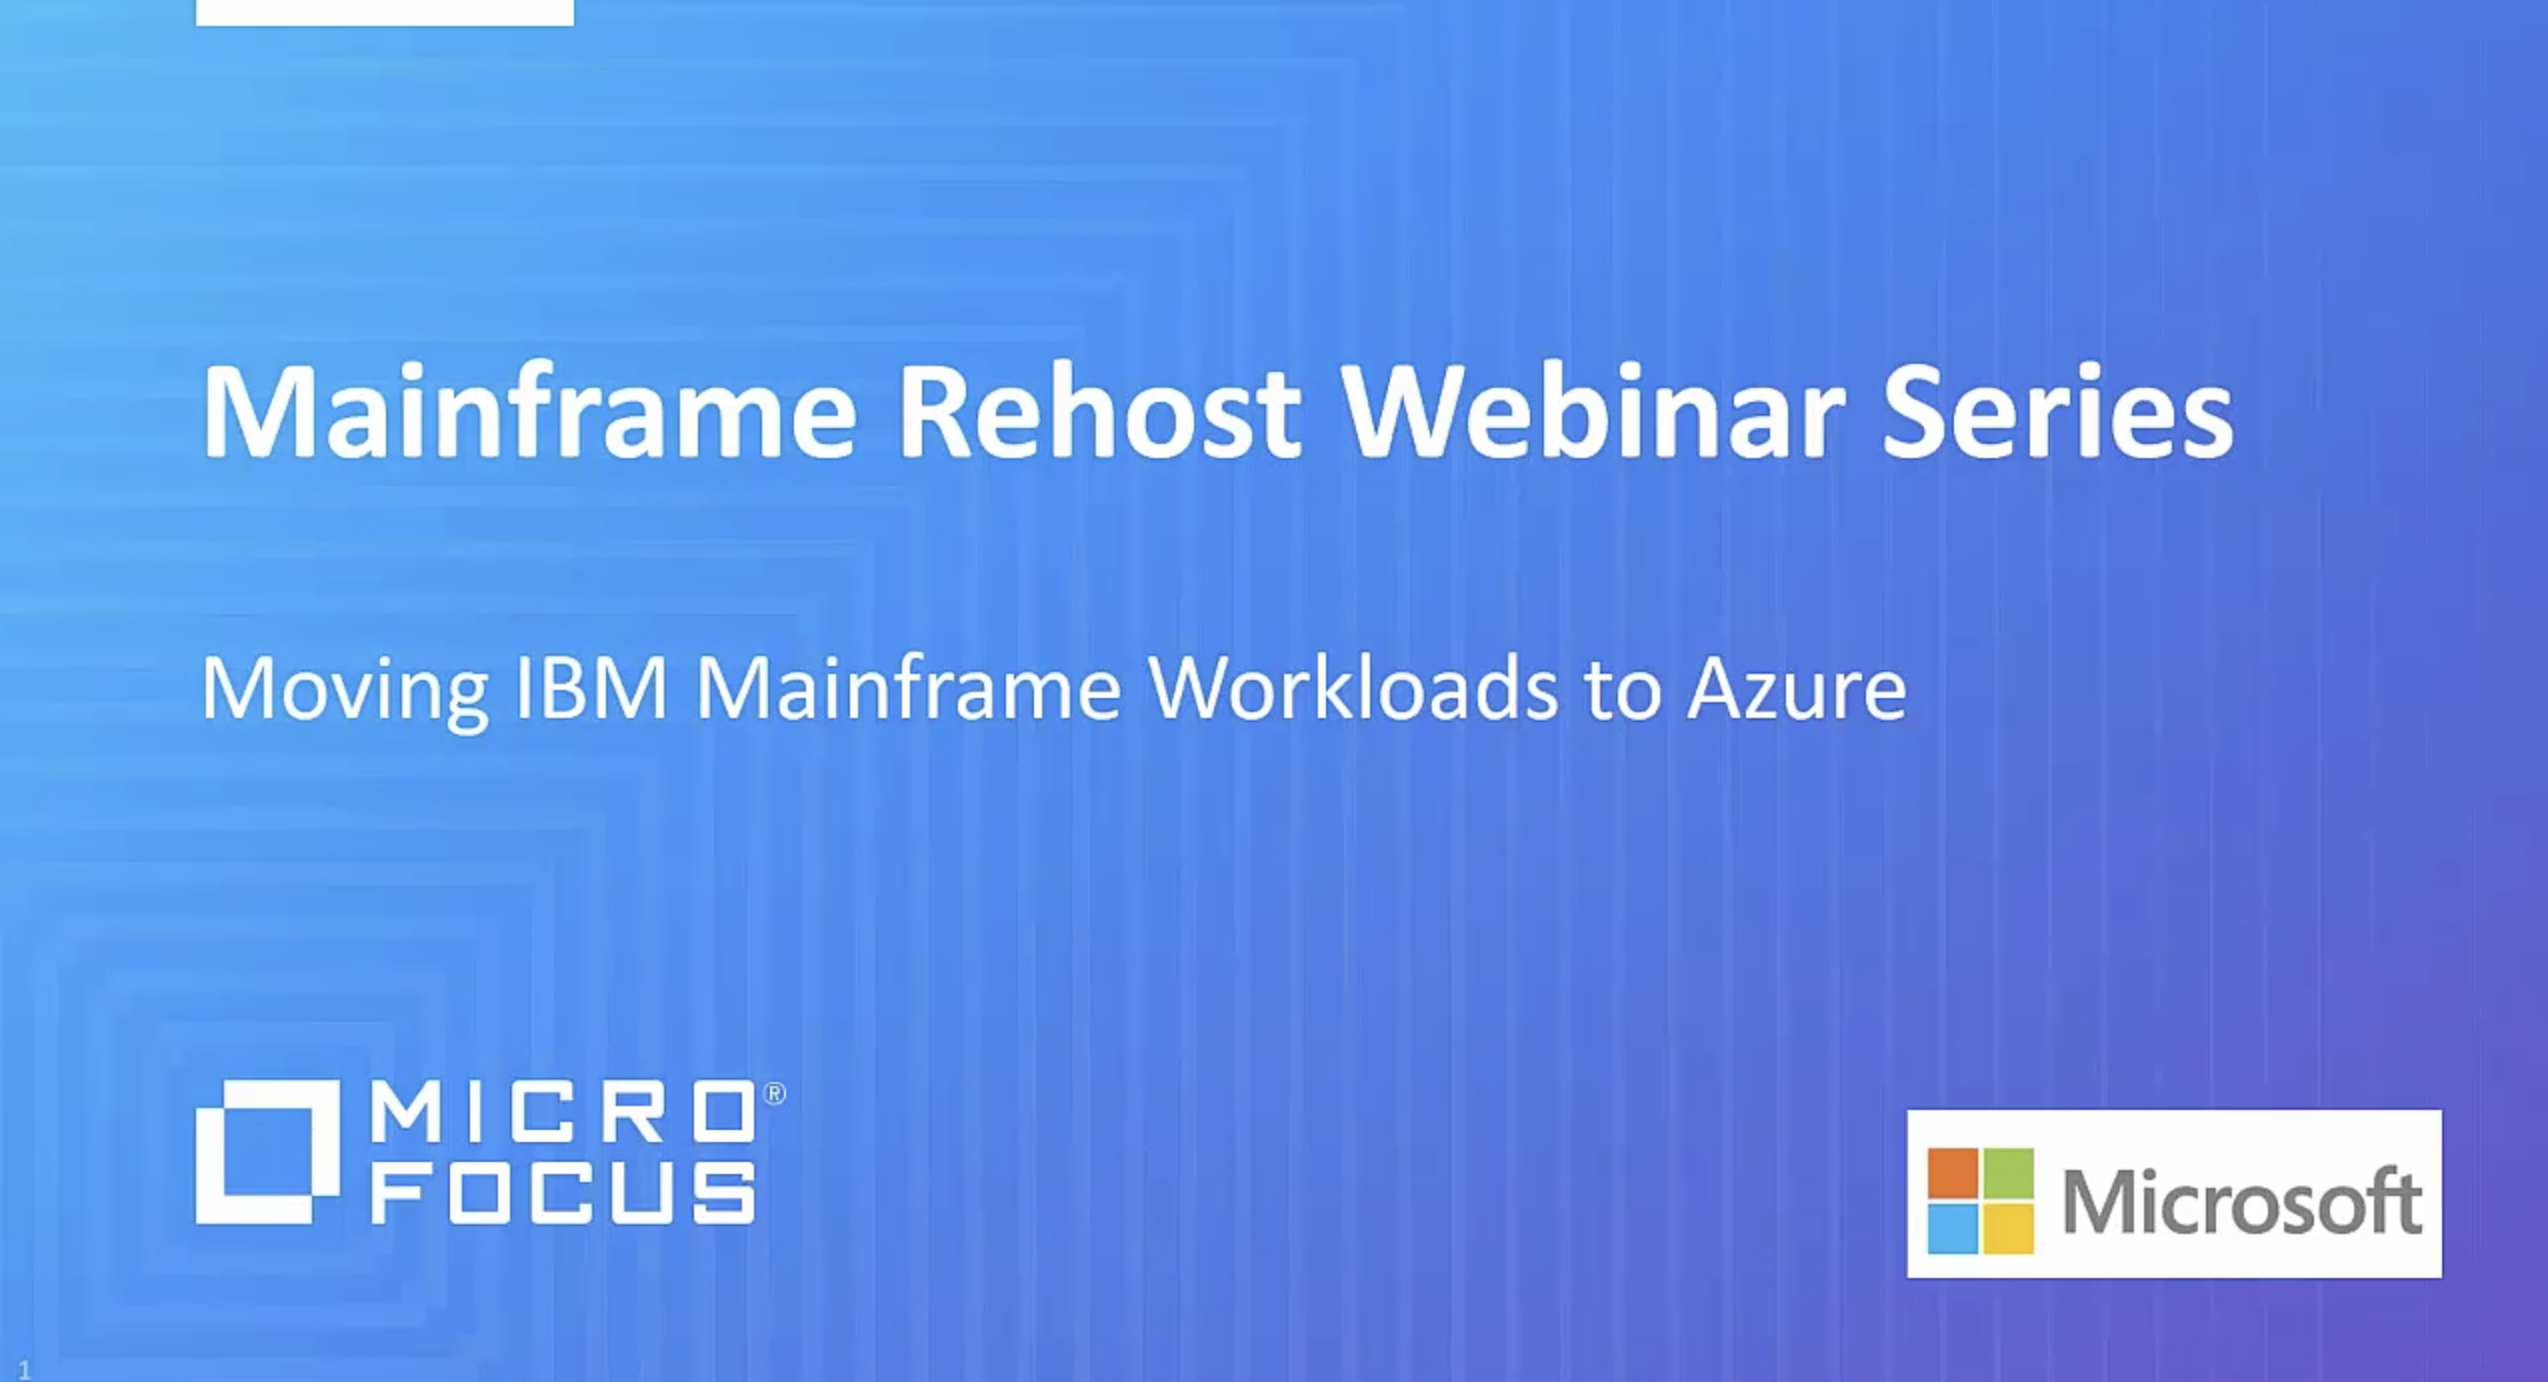 Moving IBM Mainframe Workloads to Azure